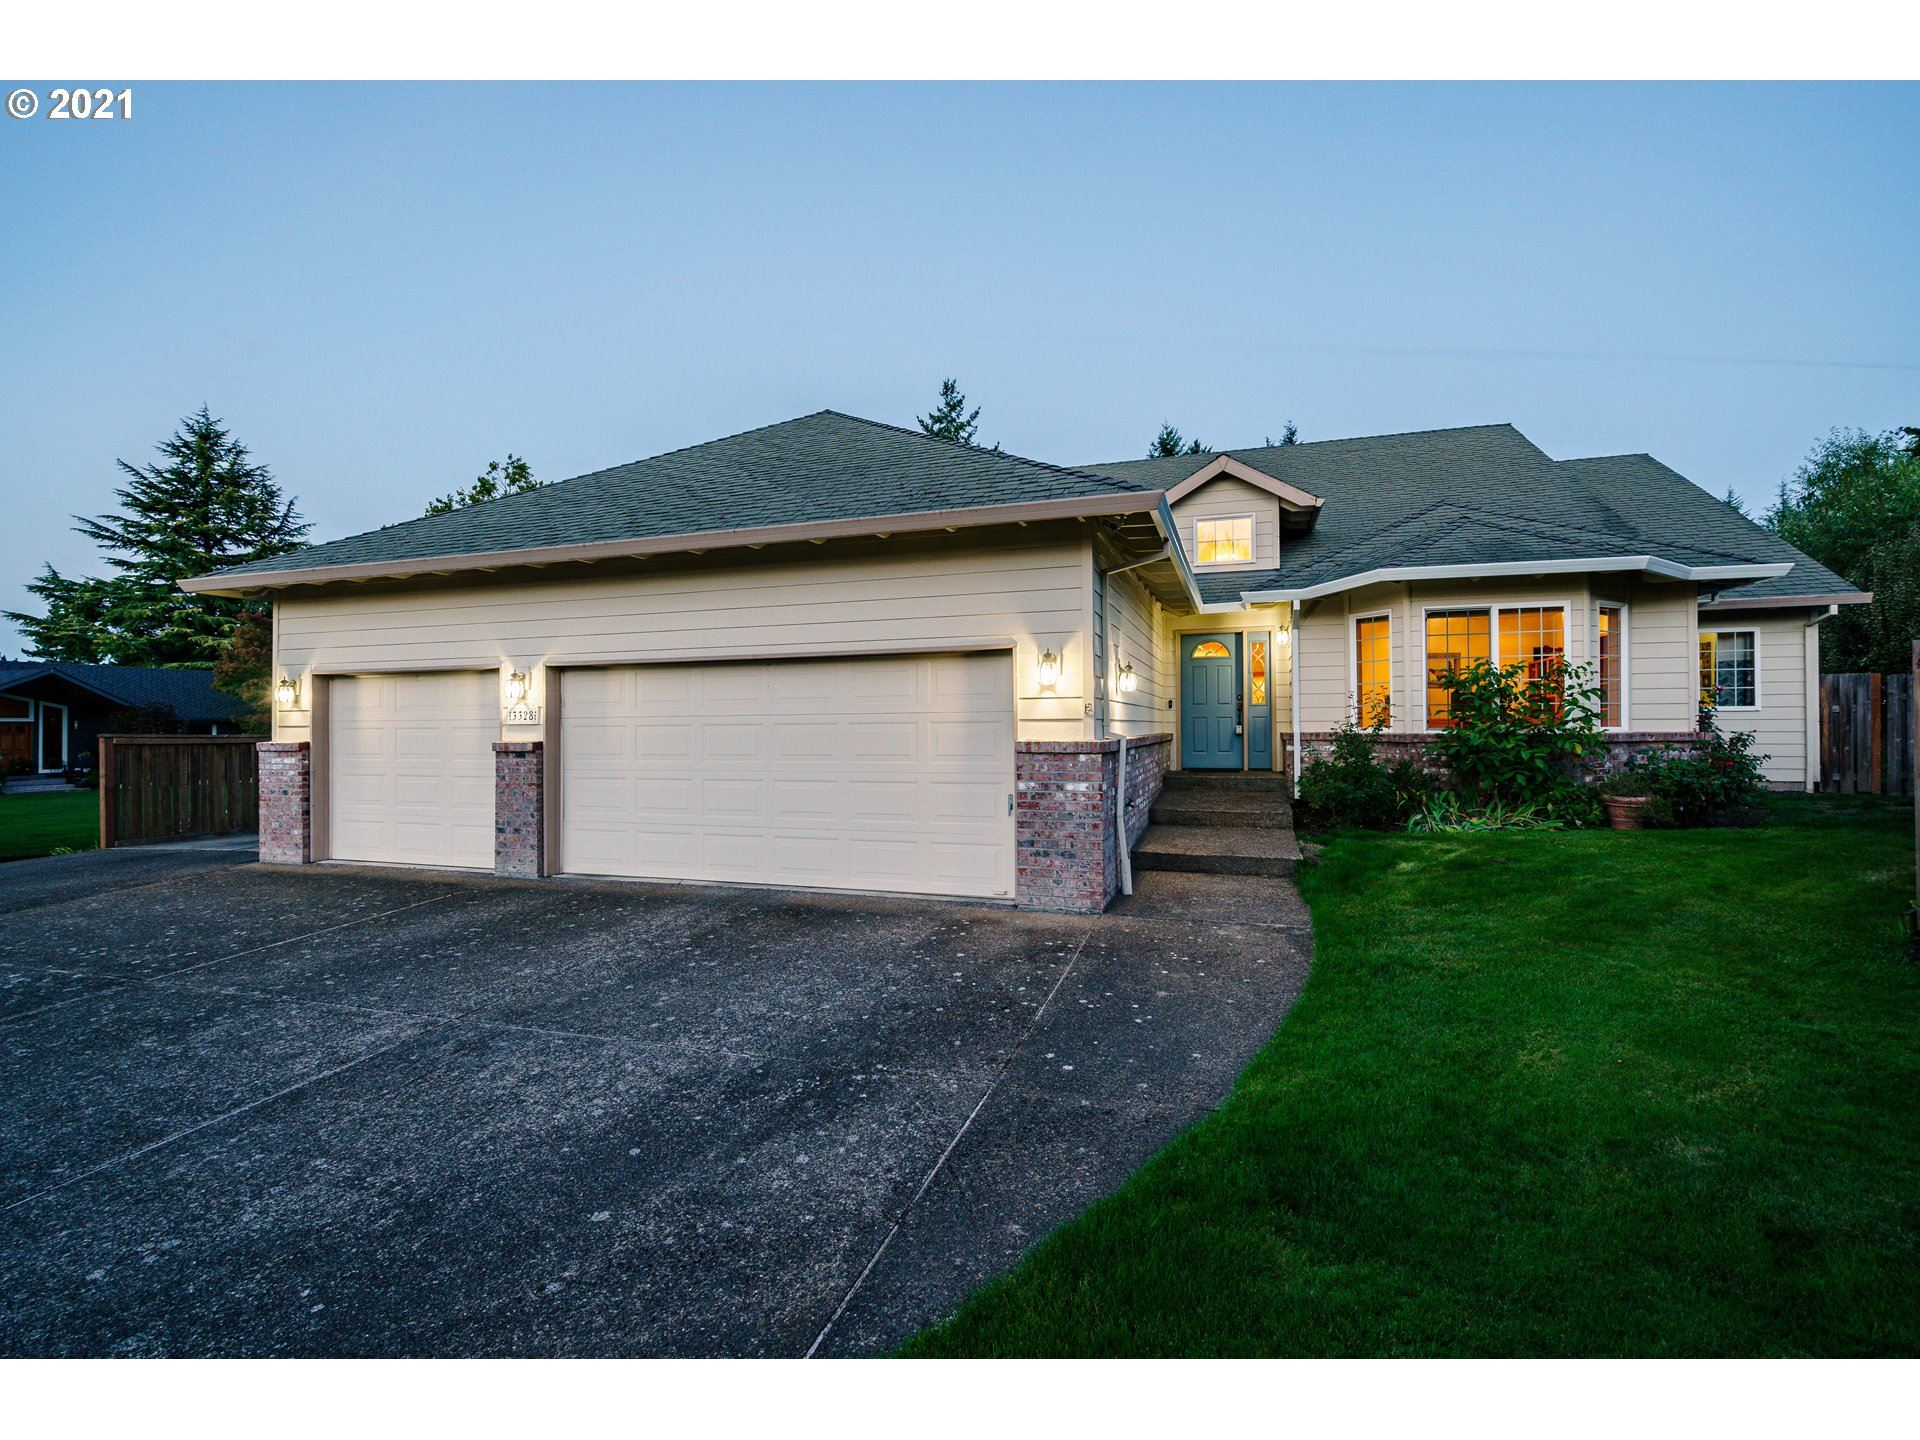 3328 NW 151ST PL, Portland, OR 97229 - MLS#: 21245270